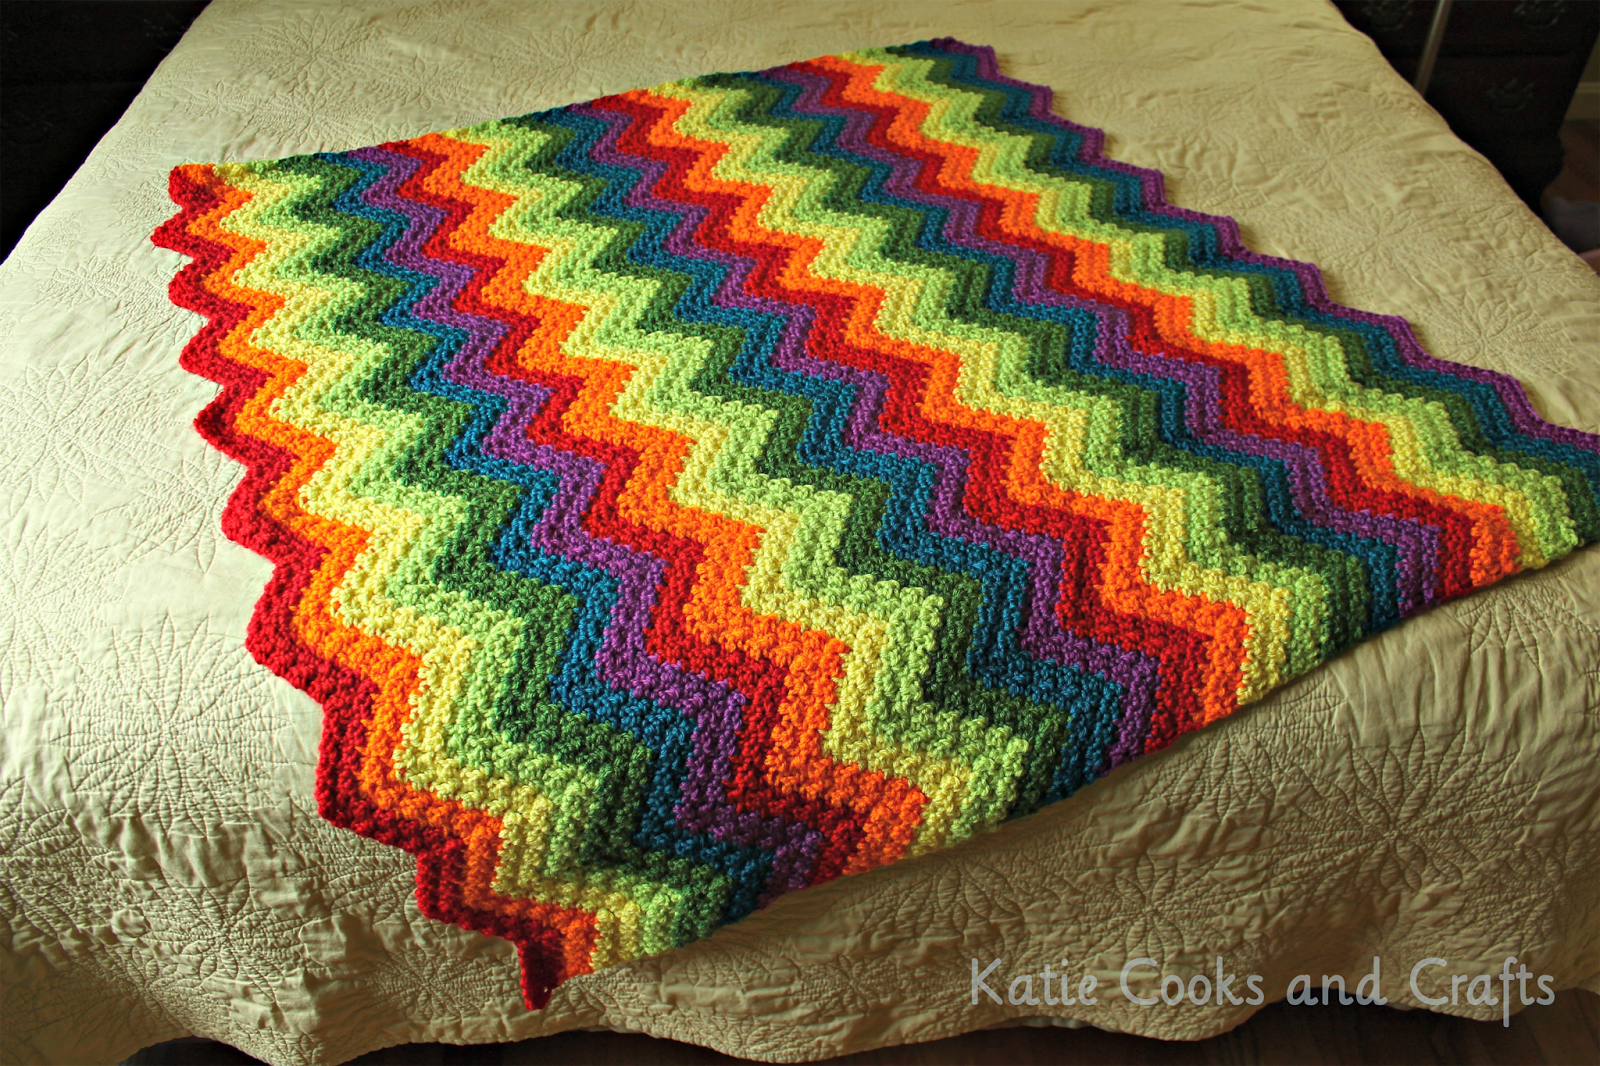 Crochet Pattern Afghan : Katie Cooks and Crafts: Rumpled Ripple Rainbow Crochet ...